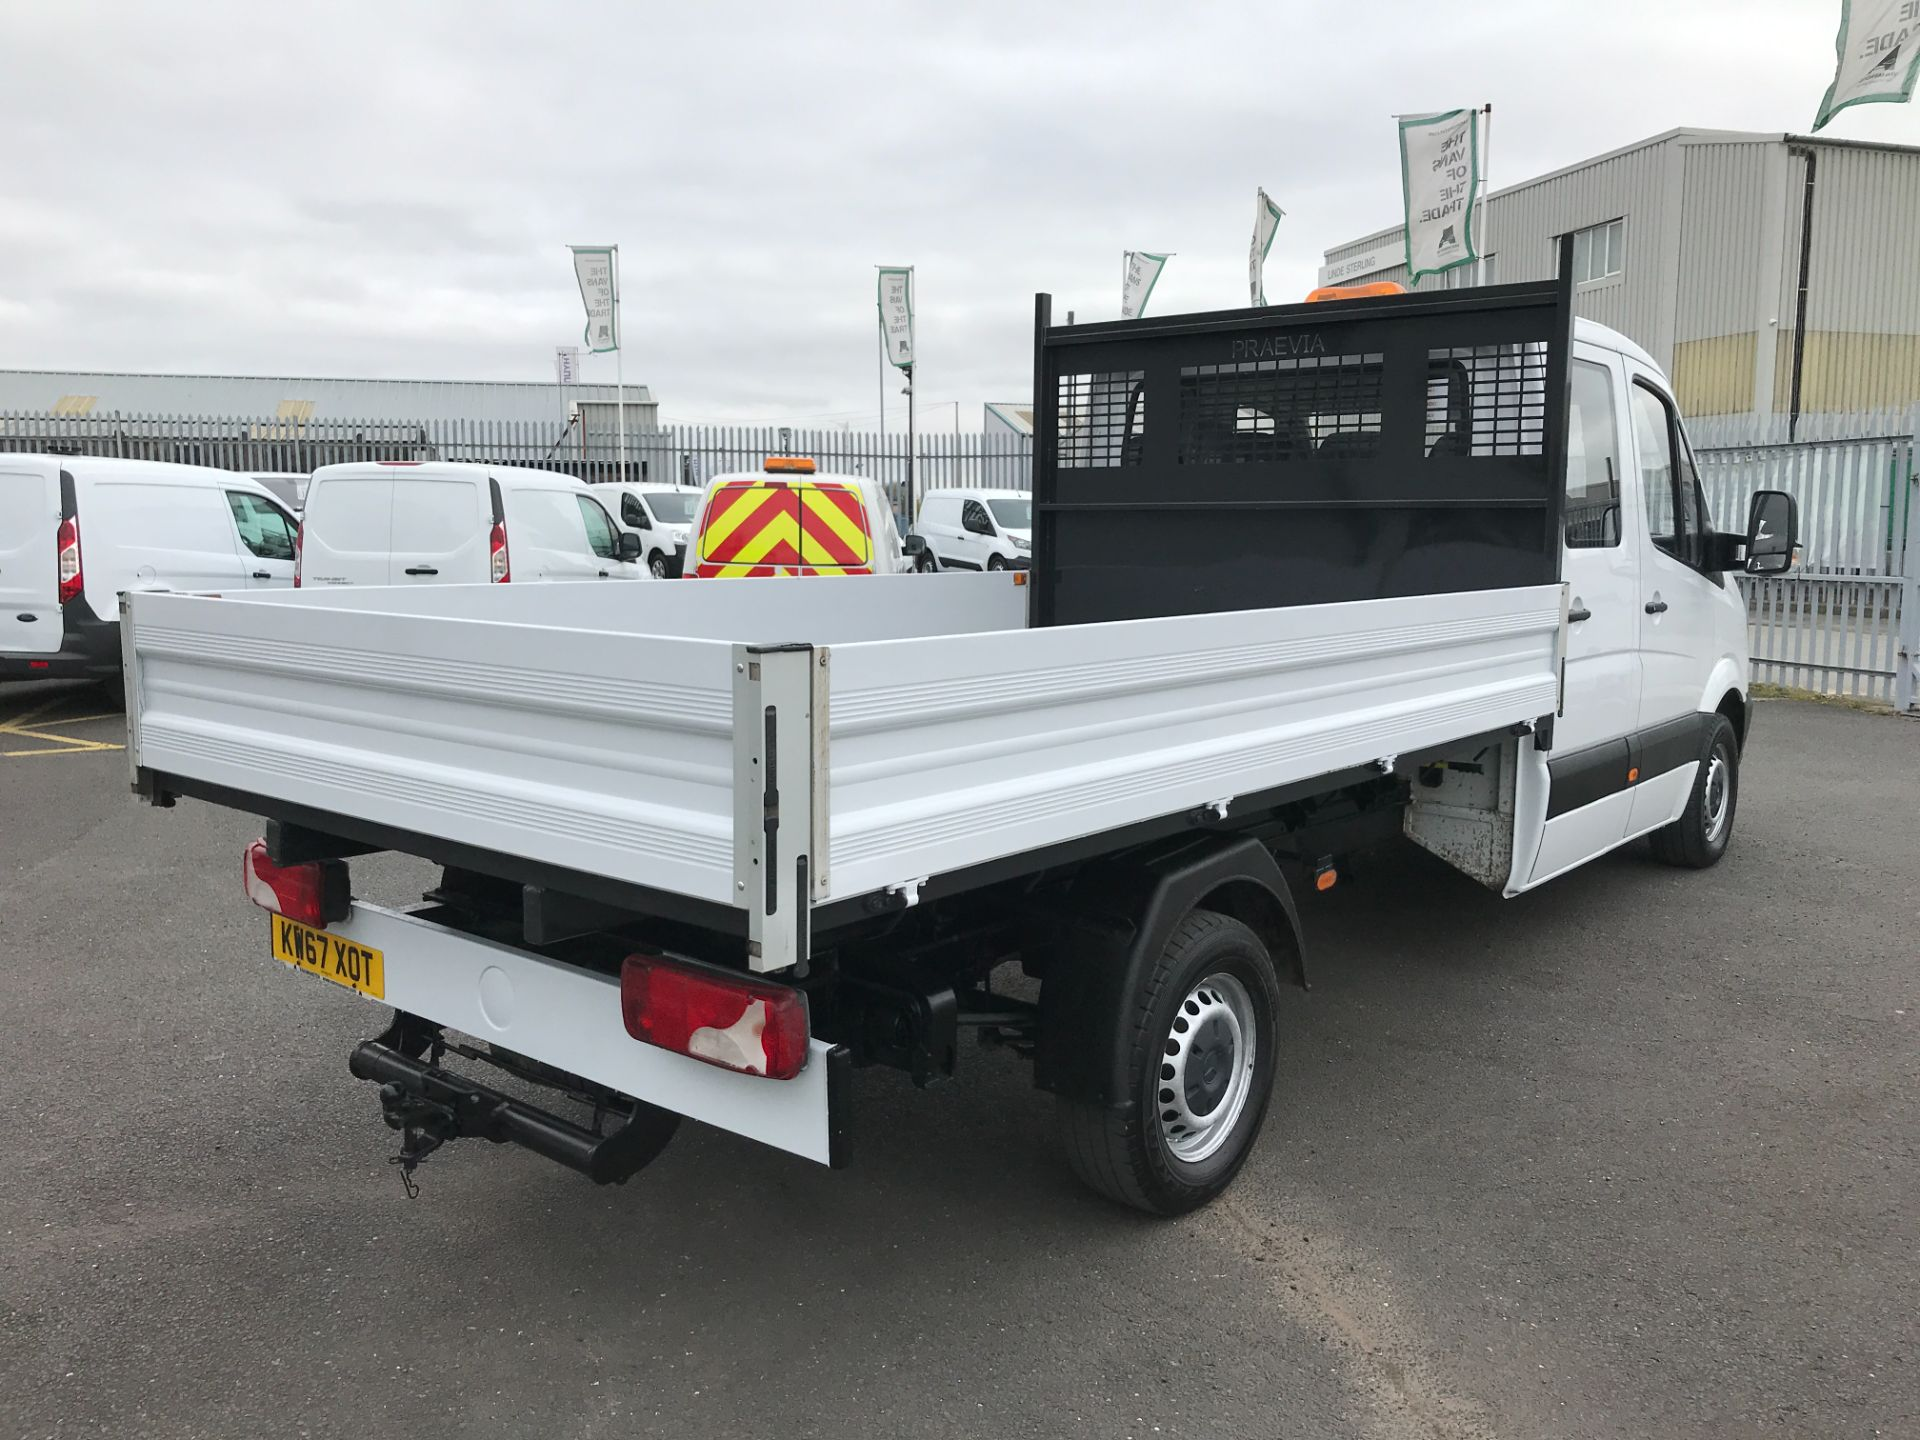 2018 Mercedes-Benz Sprinter 314CDI DOUBLE CAB TIPPER 140PS EURO 6 (KW67XOT) Image 8